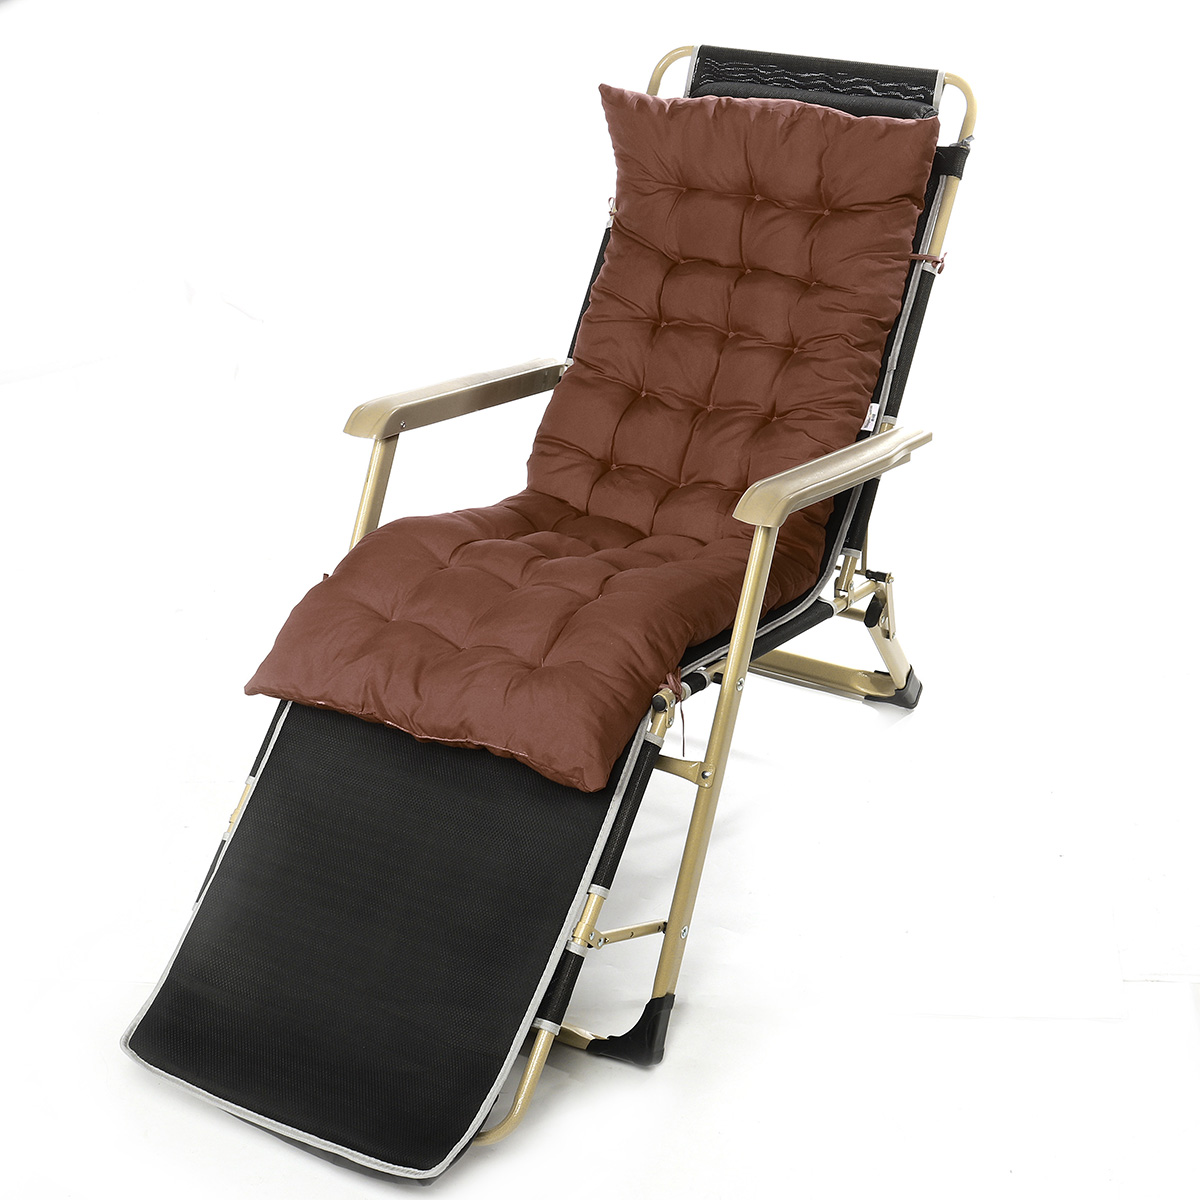 Rocking Chair Cushions Chair Pads Back Cushion Patio Bench Cushion Lounge Chair Cover Pads Sofa Cushions Seat Cushion Outdoor Patio Chaise Red Wine Orange Green Black Blue Grey Coffee Purple Rose Red Walmart Com Walmart Com